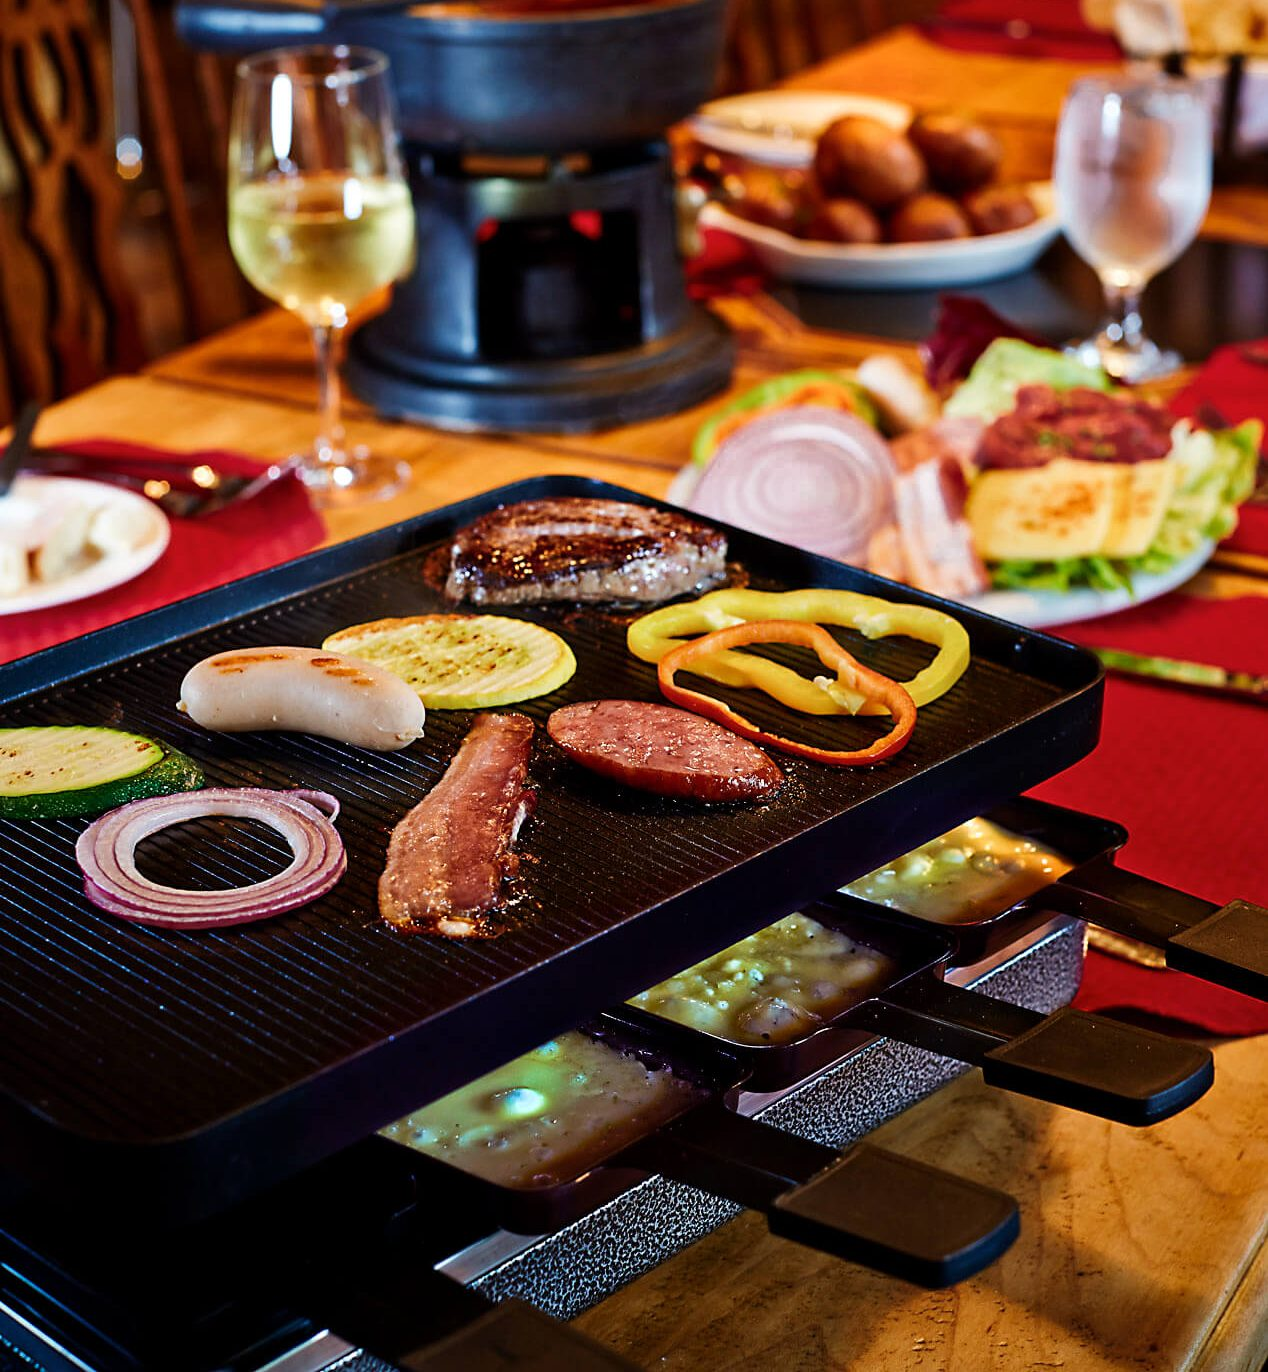 A raclette grill with a griddle on top cooking various meats and vegetables.